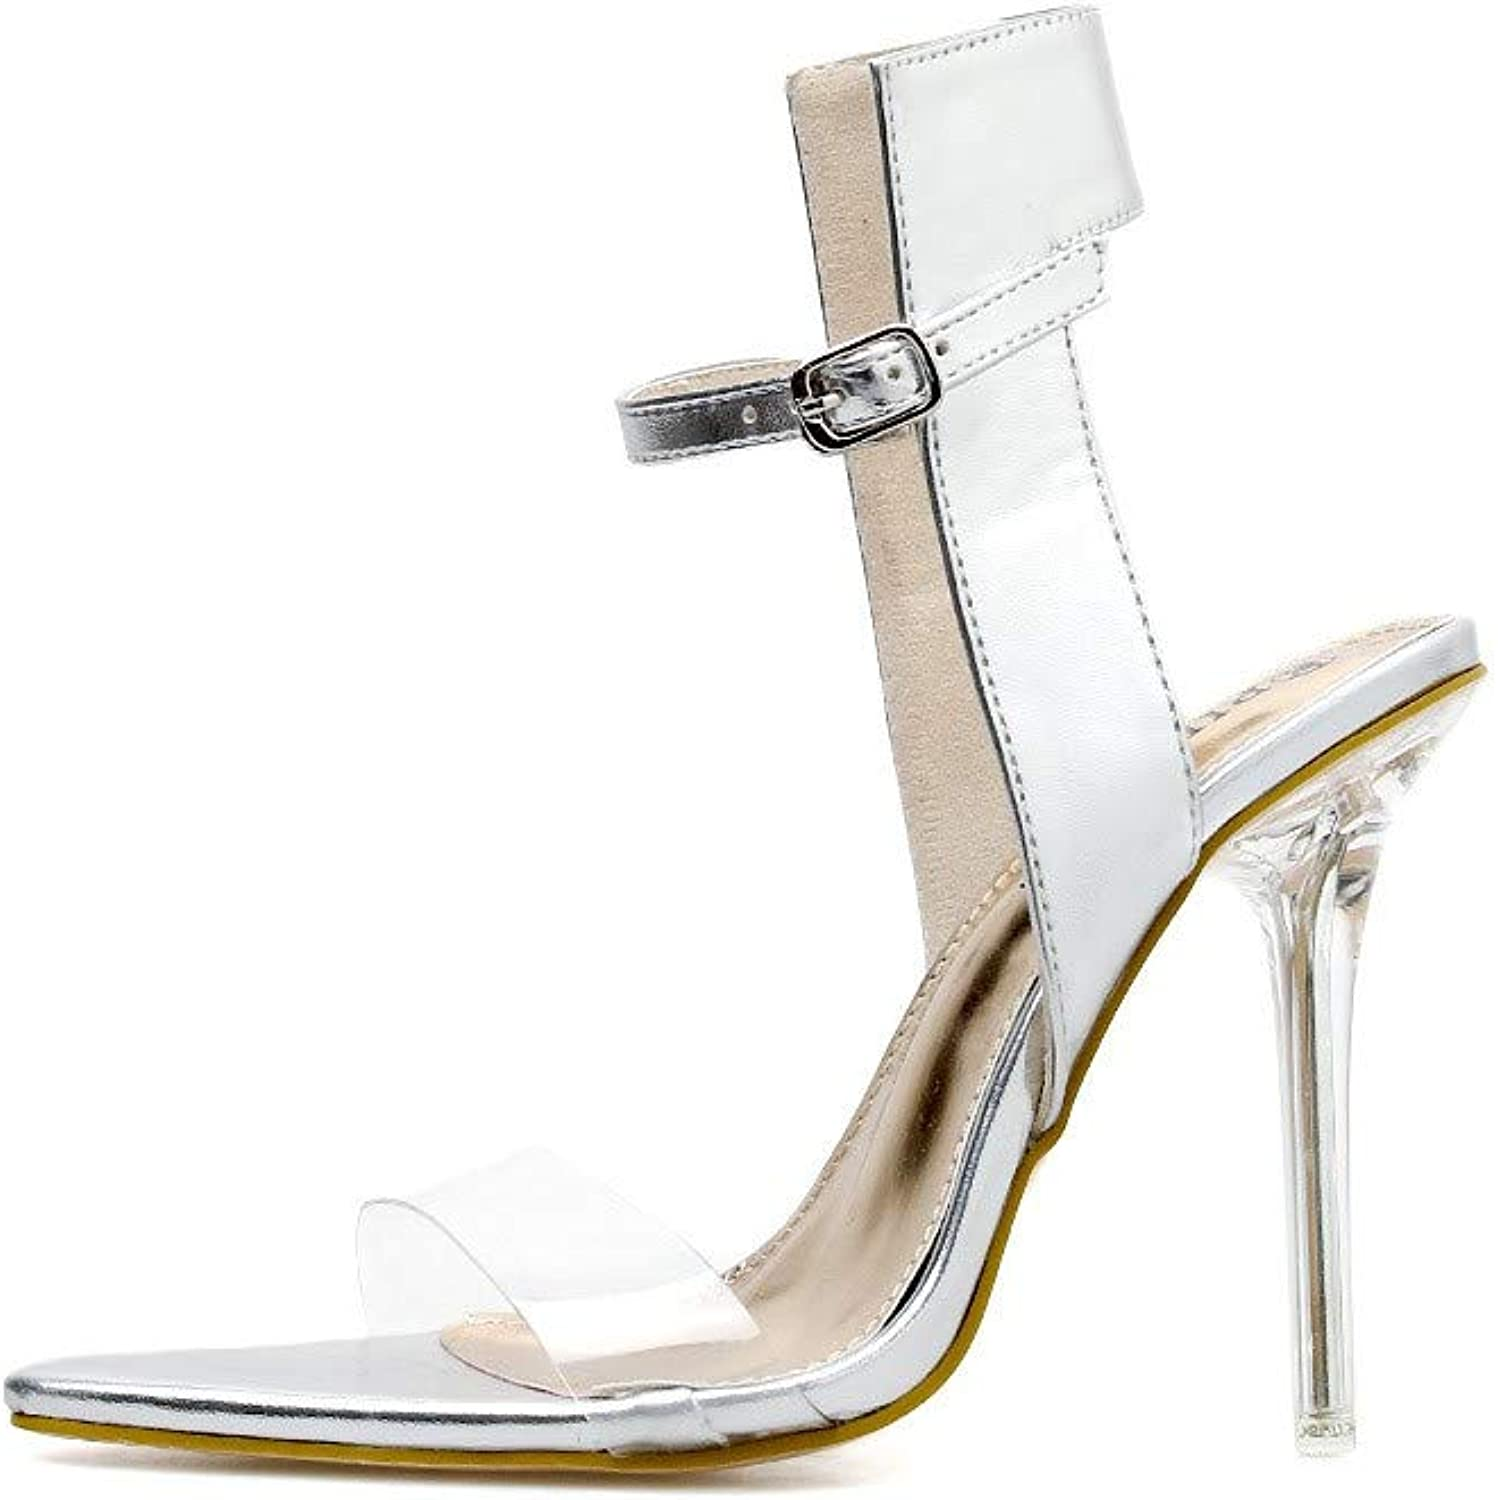 JQfashion Women's High-Heeled shoes Super High-Heeled Sandals Crystal Tip Fine-Heeled Button Sexy Night Club